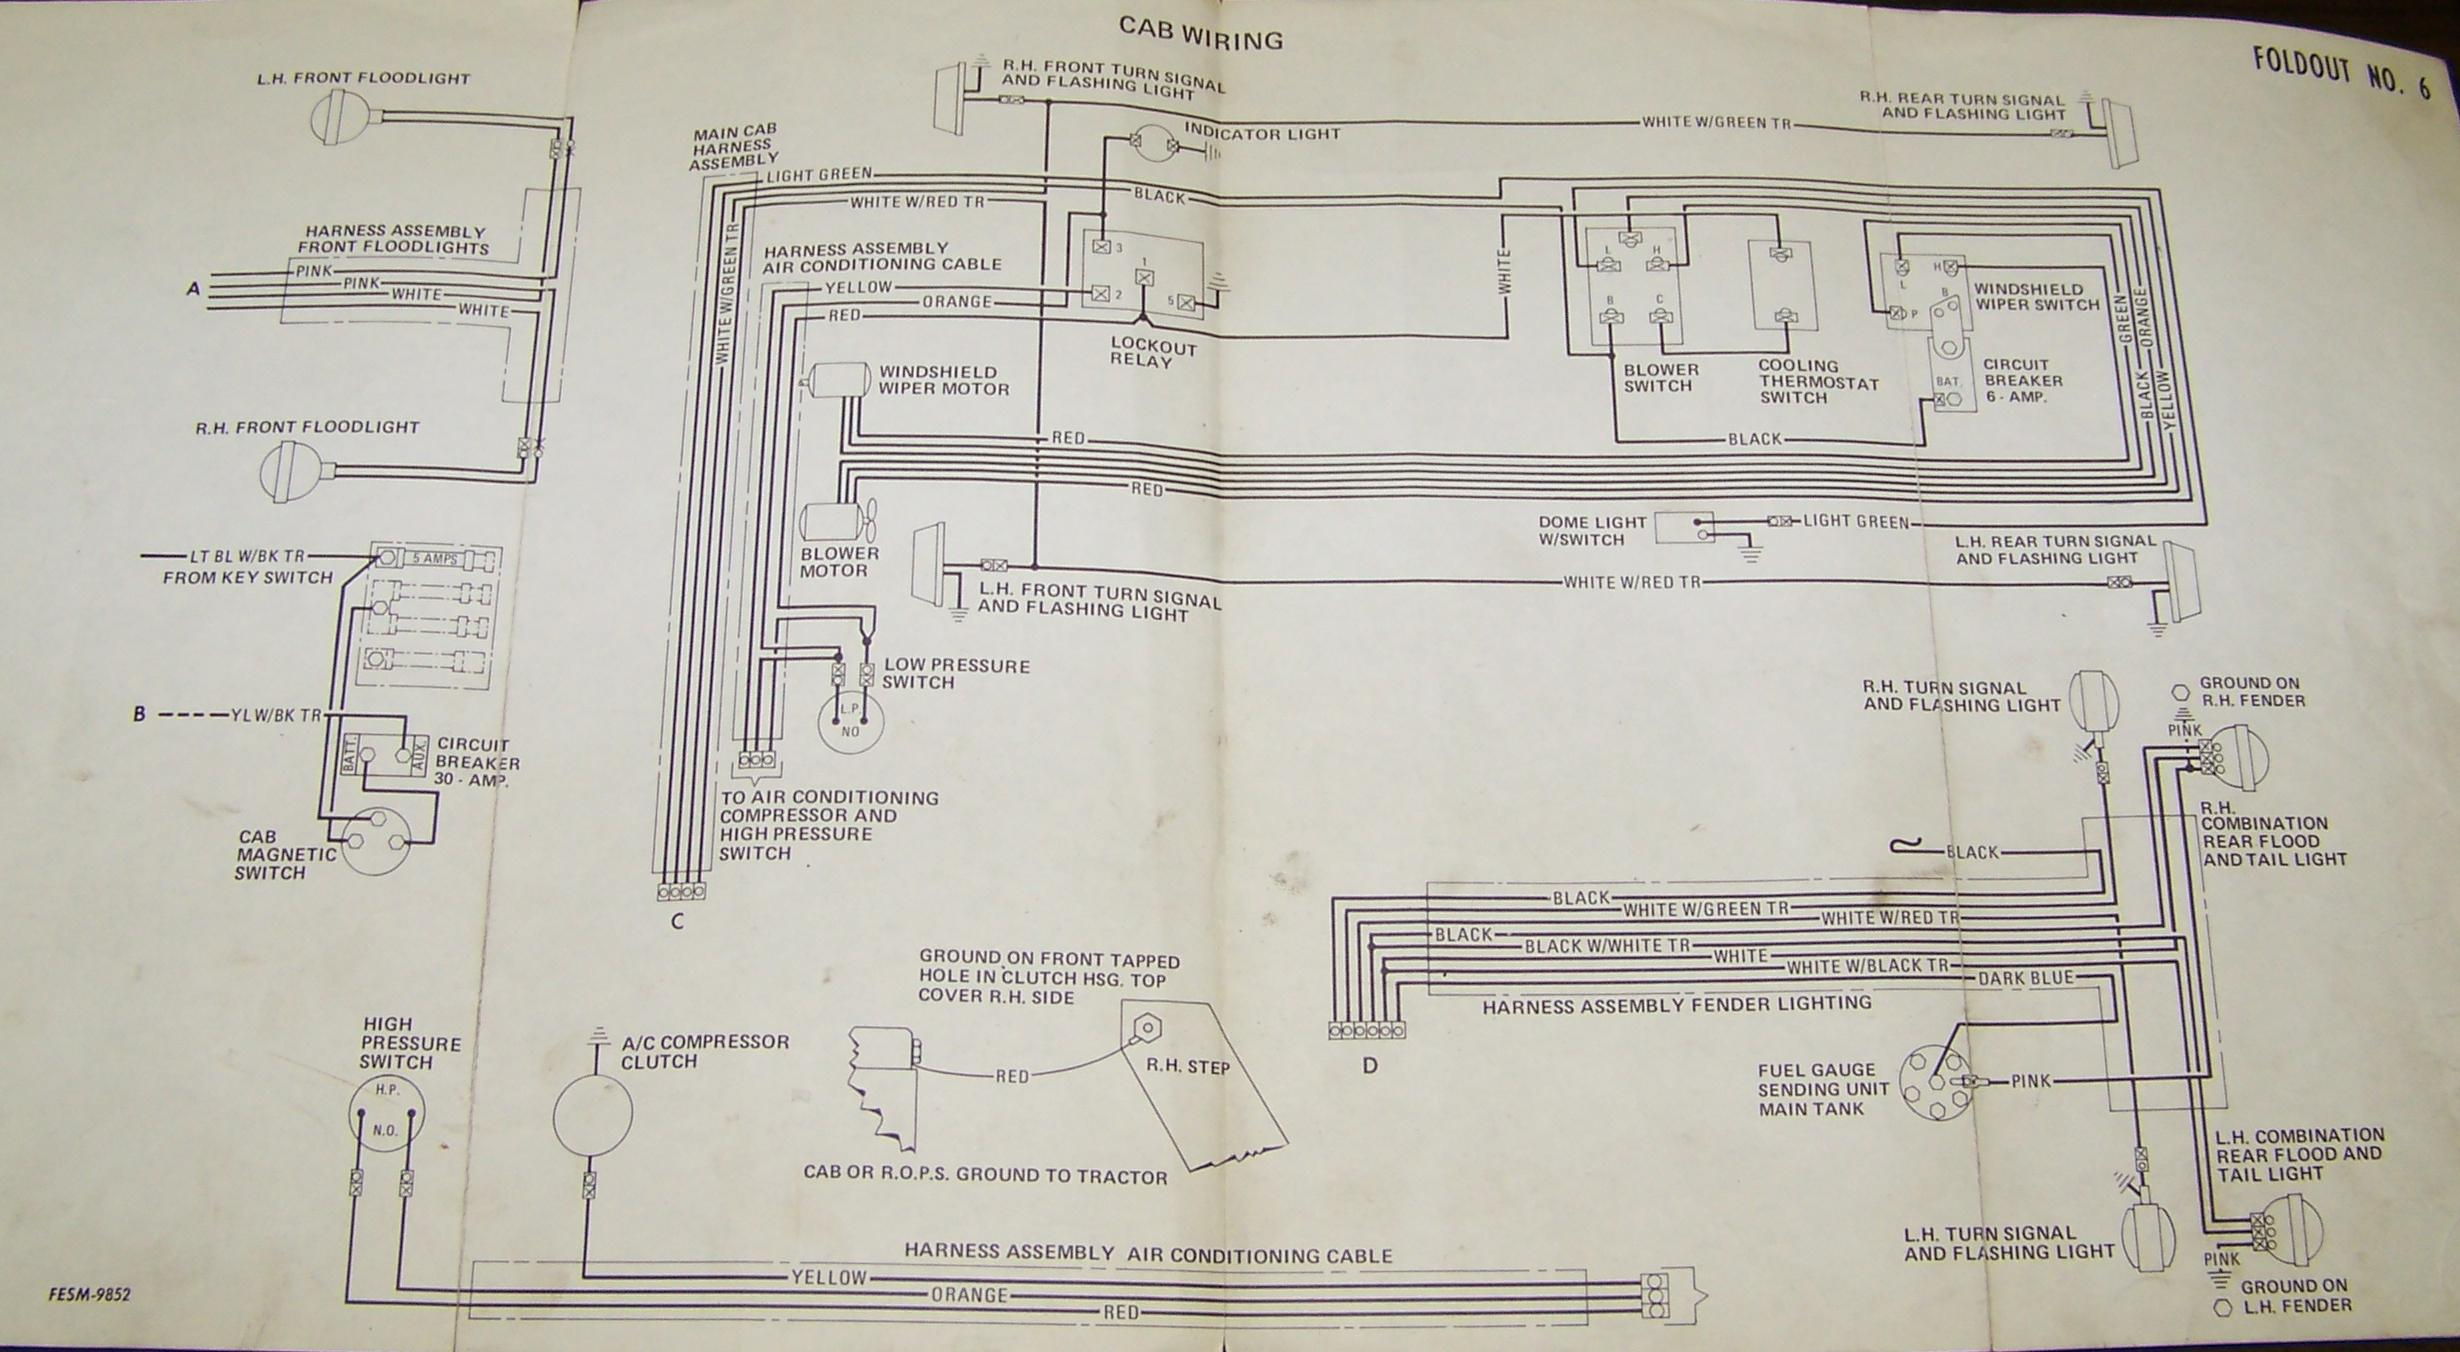 Carter & Gruenewald Co. Inc. - IH-FARMALL Tractor Electrical Wiring Diagrams